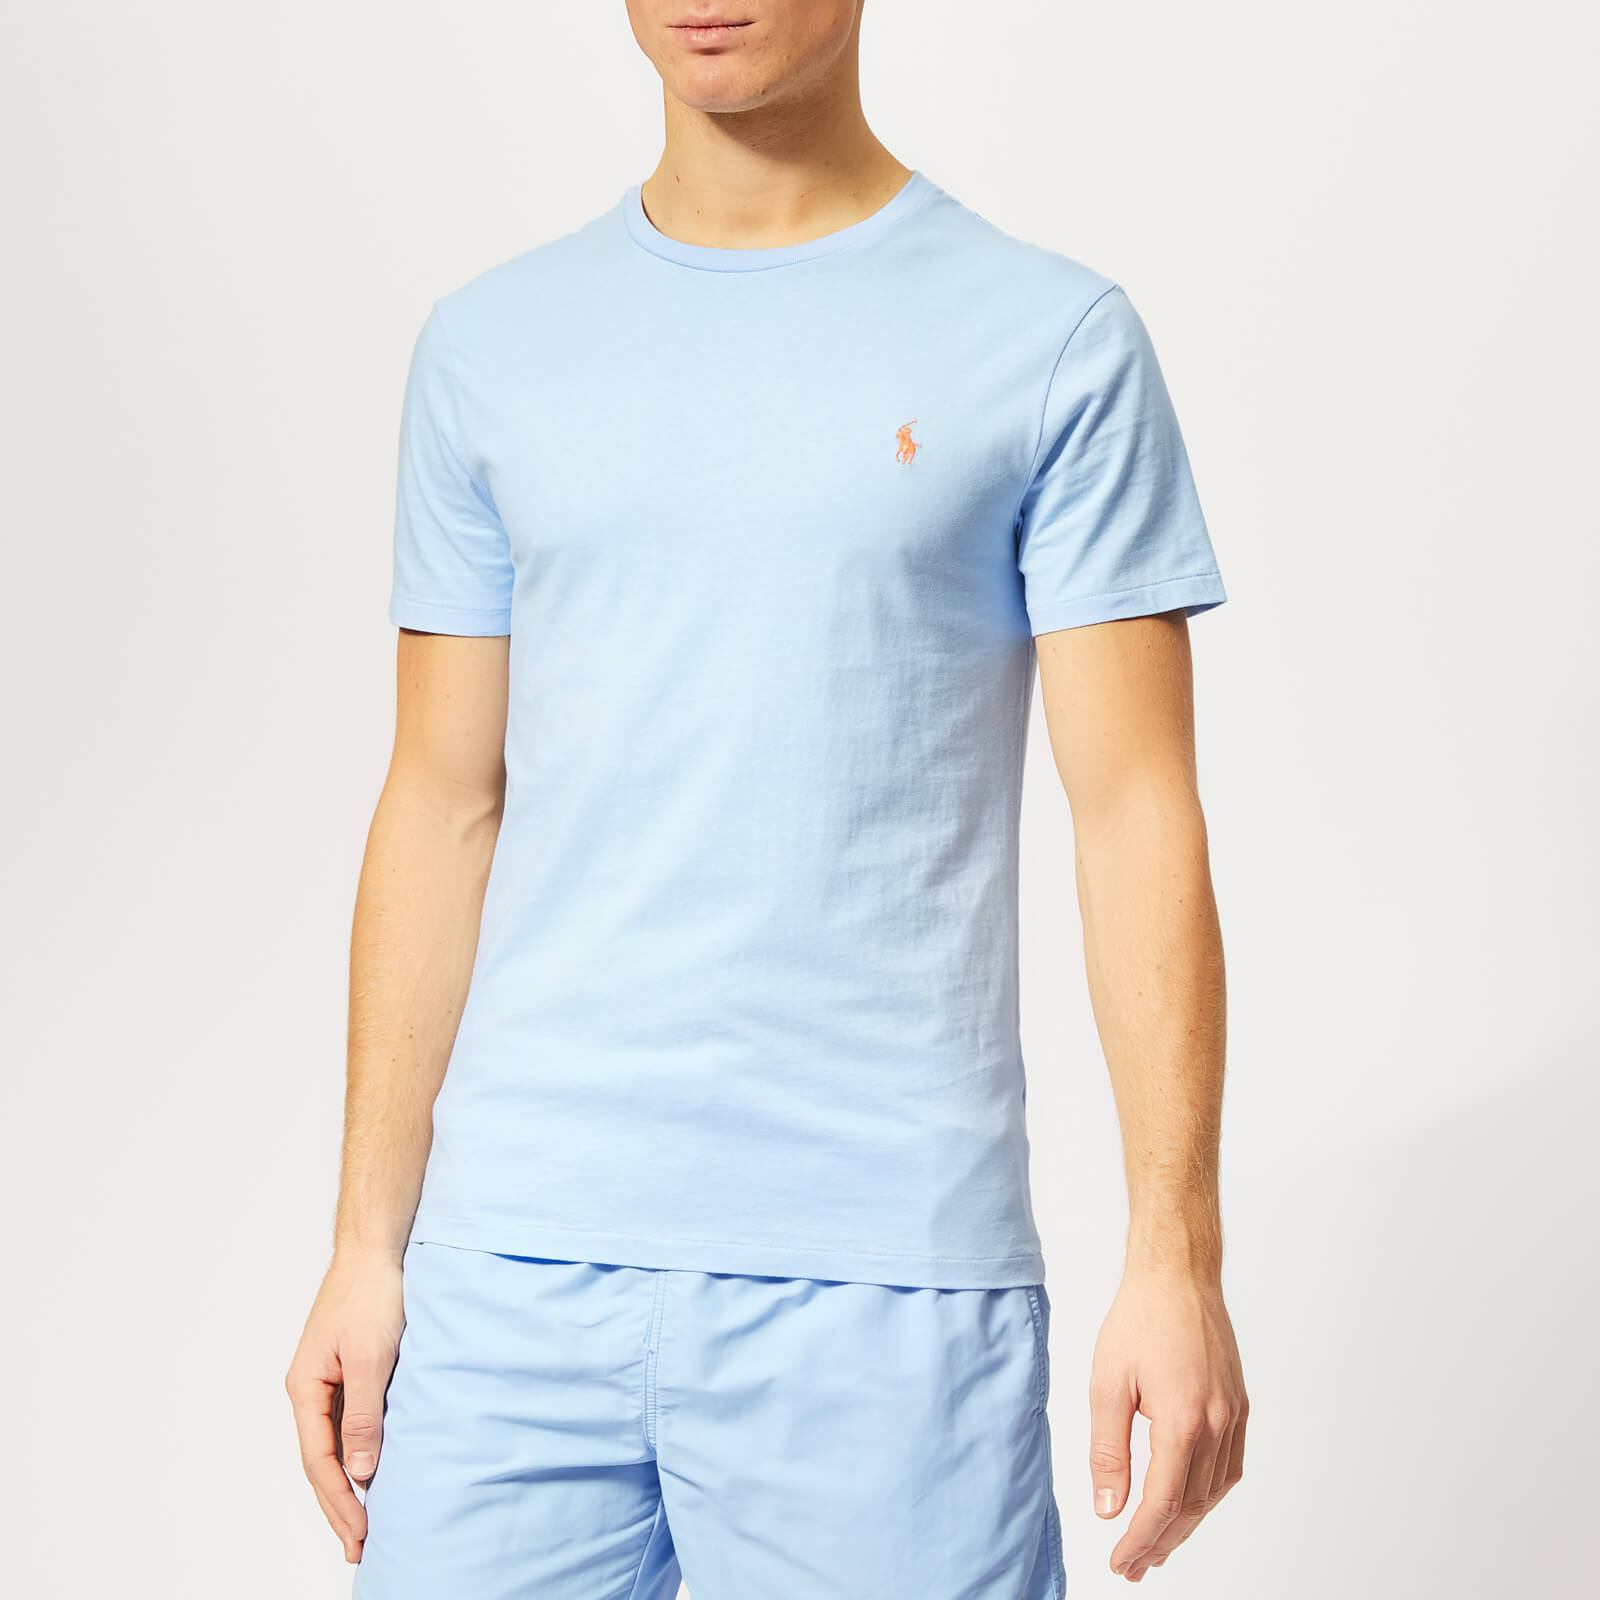 8f974893f Polo Ralph Lauren Men's Crew Neck T-Shirt - Baby Blue - Free UK Delivery  over £50